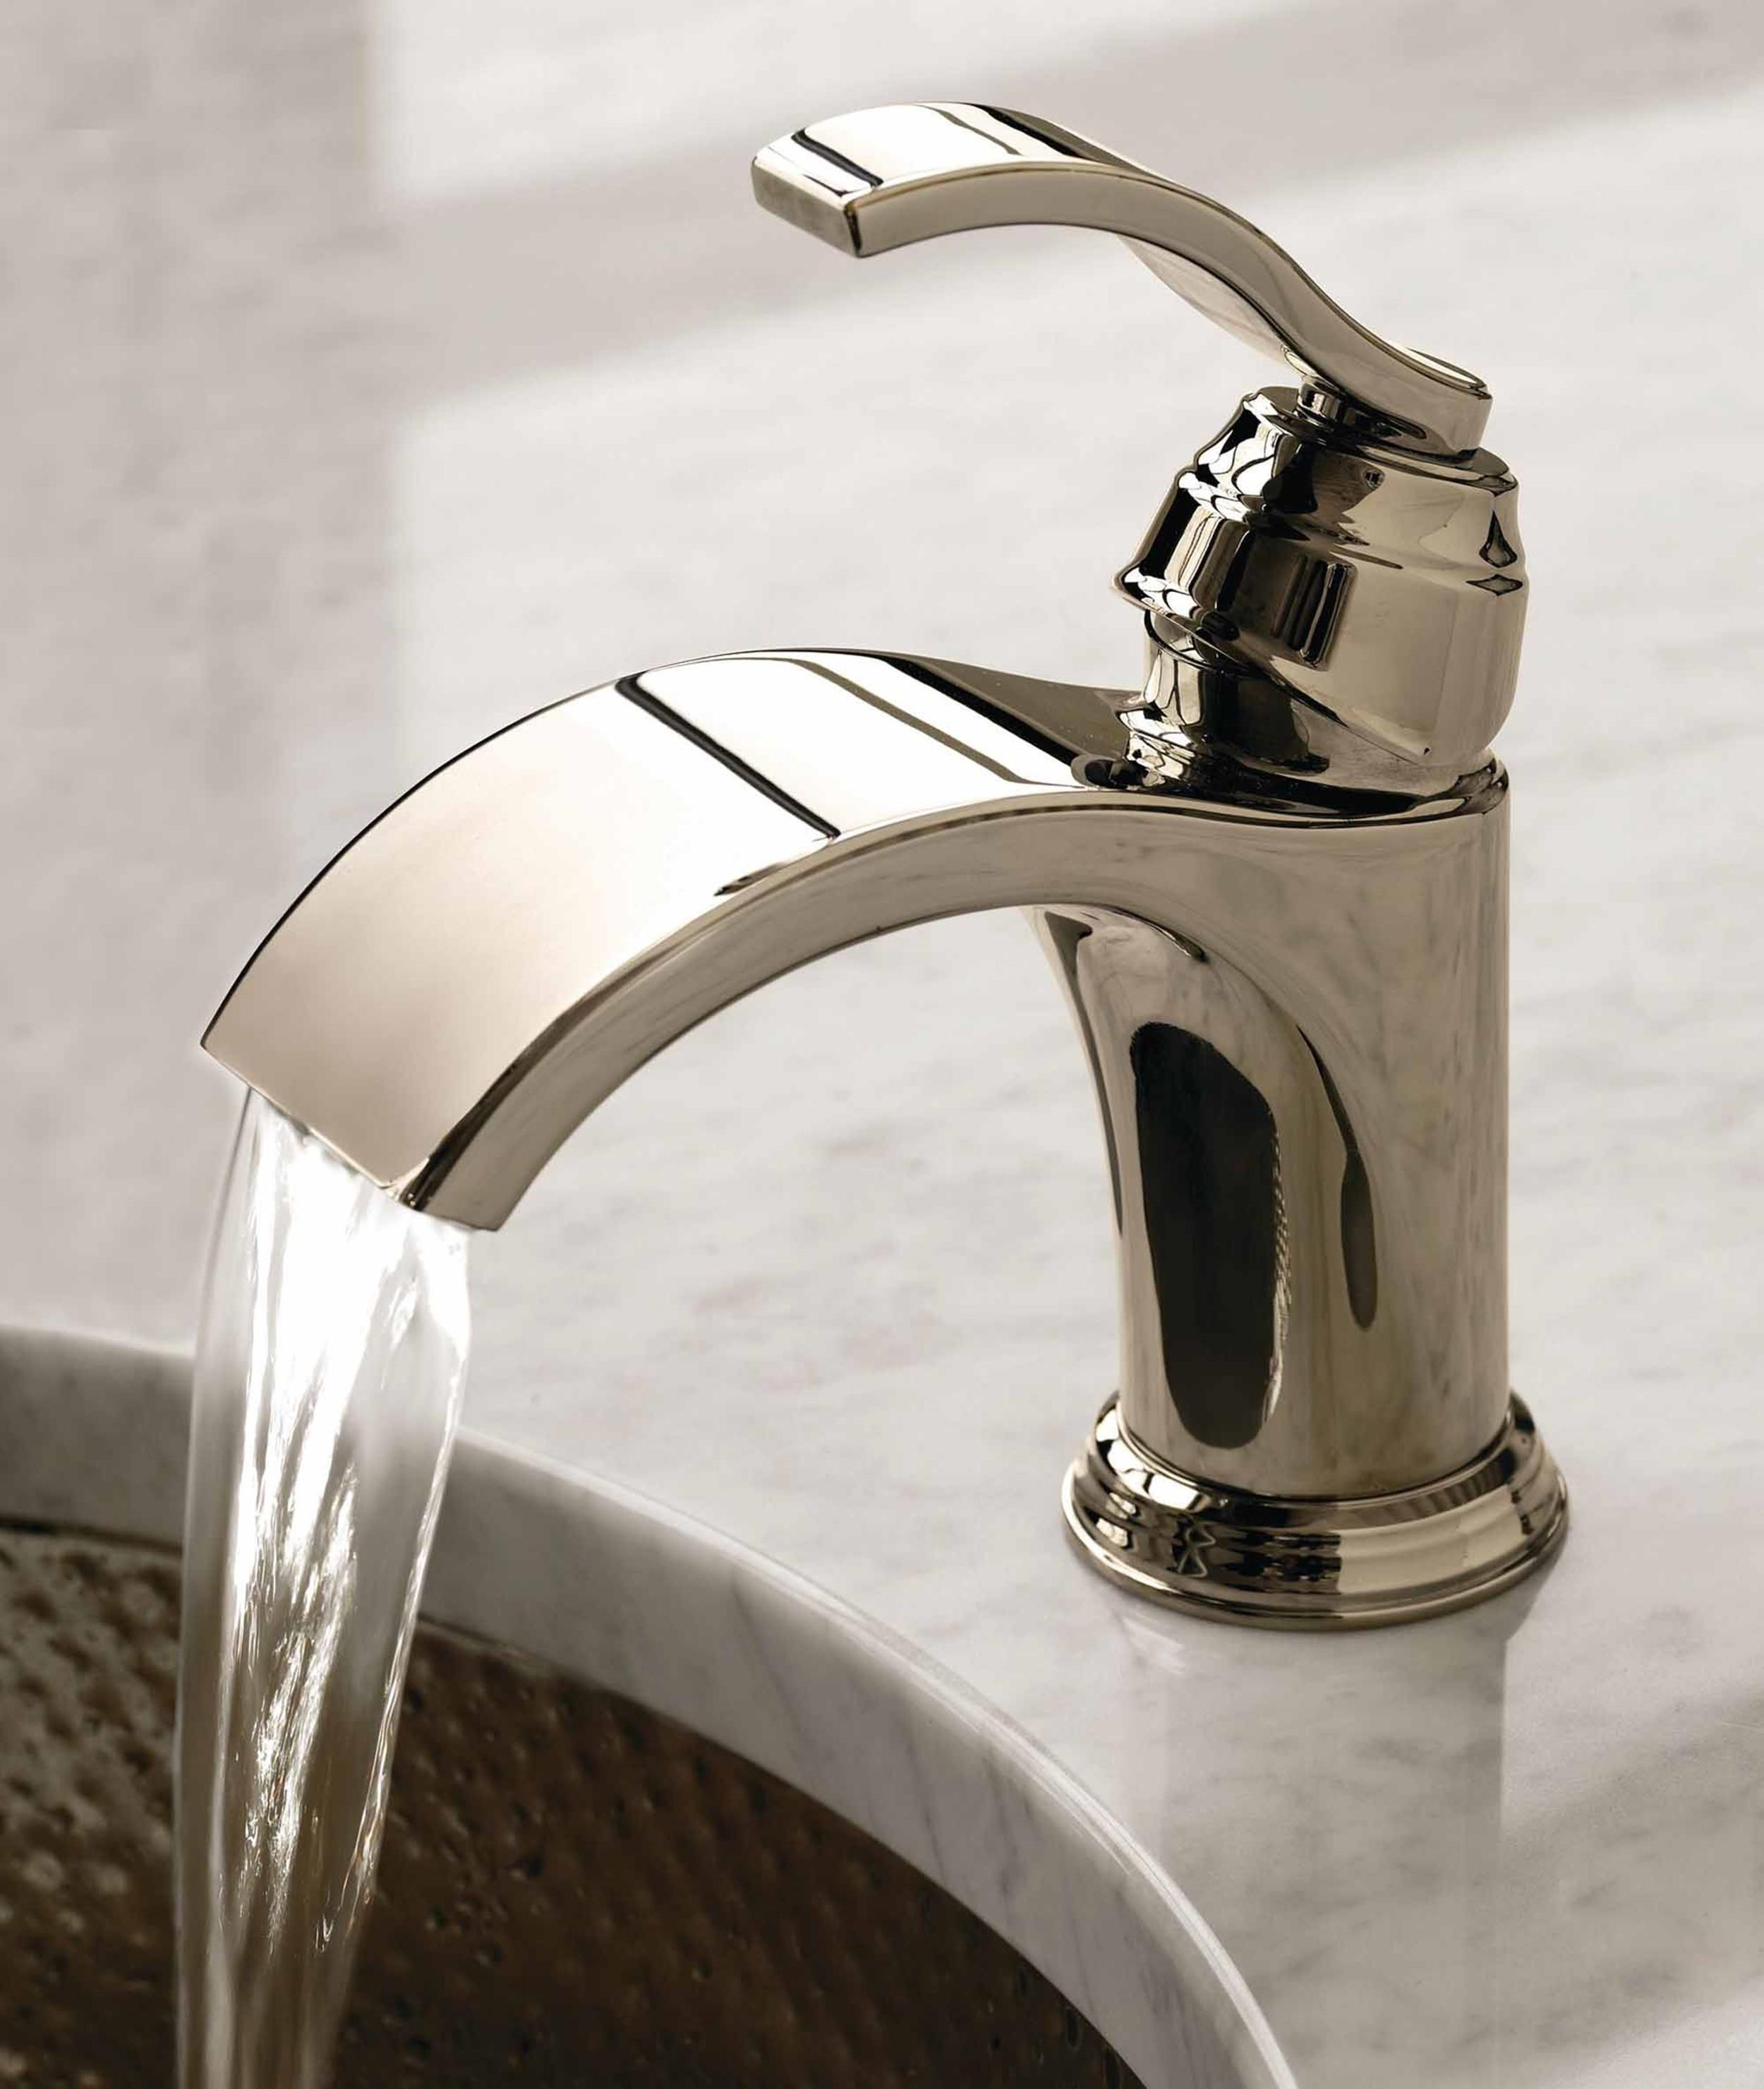 Faucets At Lowes To Make Refreshing Changes To Your Bath And Kitchen Ideas 23 Faucet Bathroom Faucets Widespread Bathroom Faucet